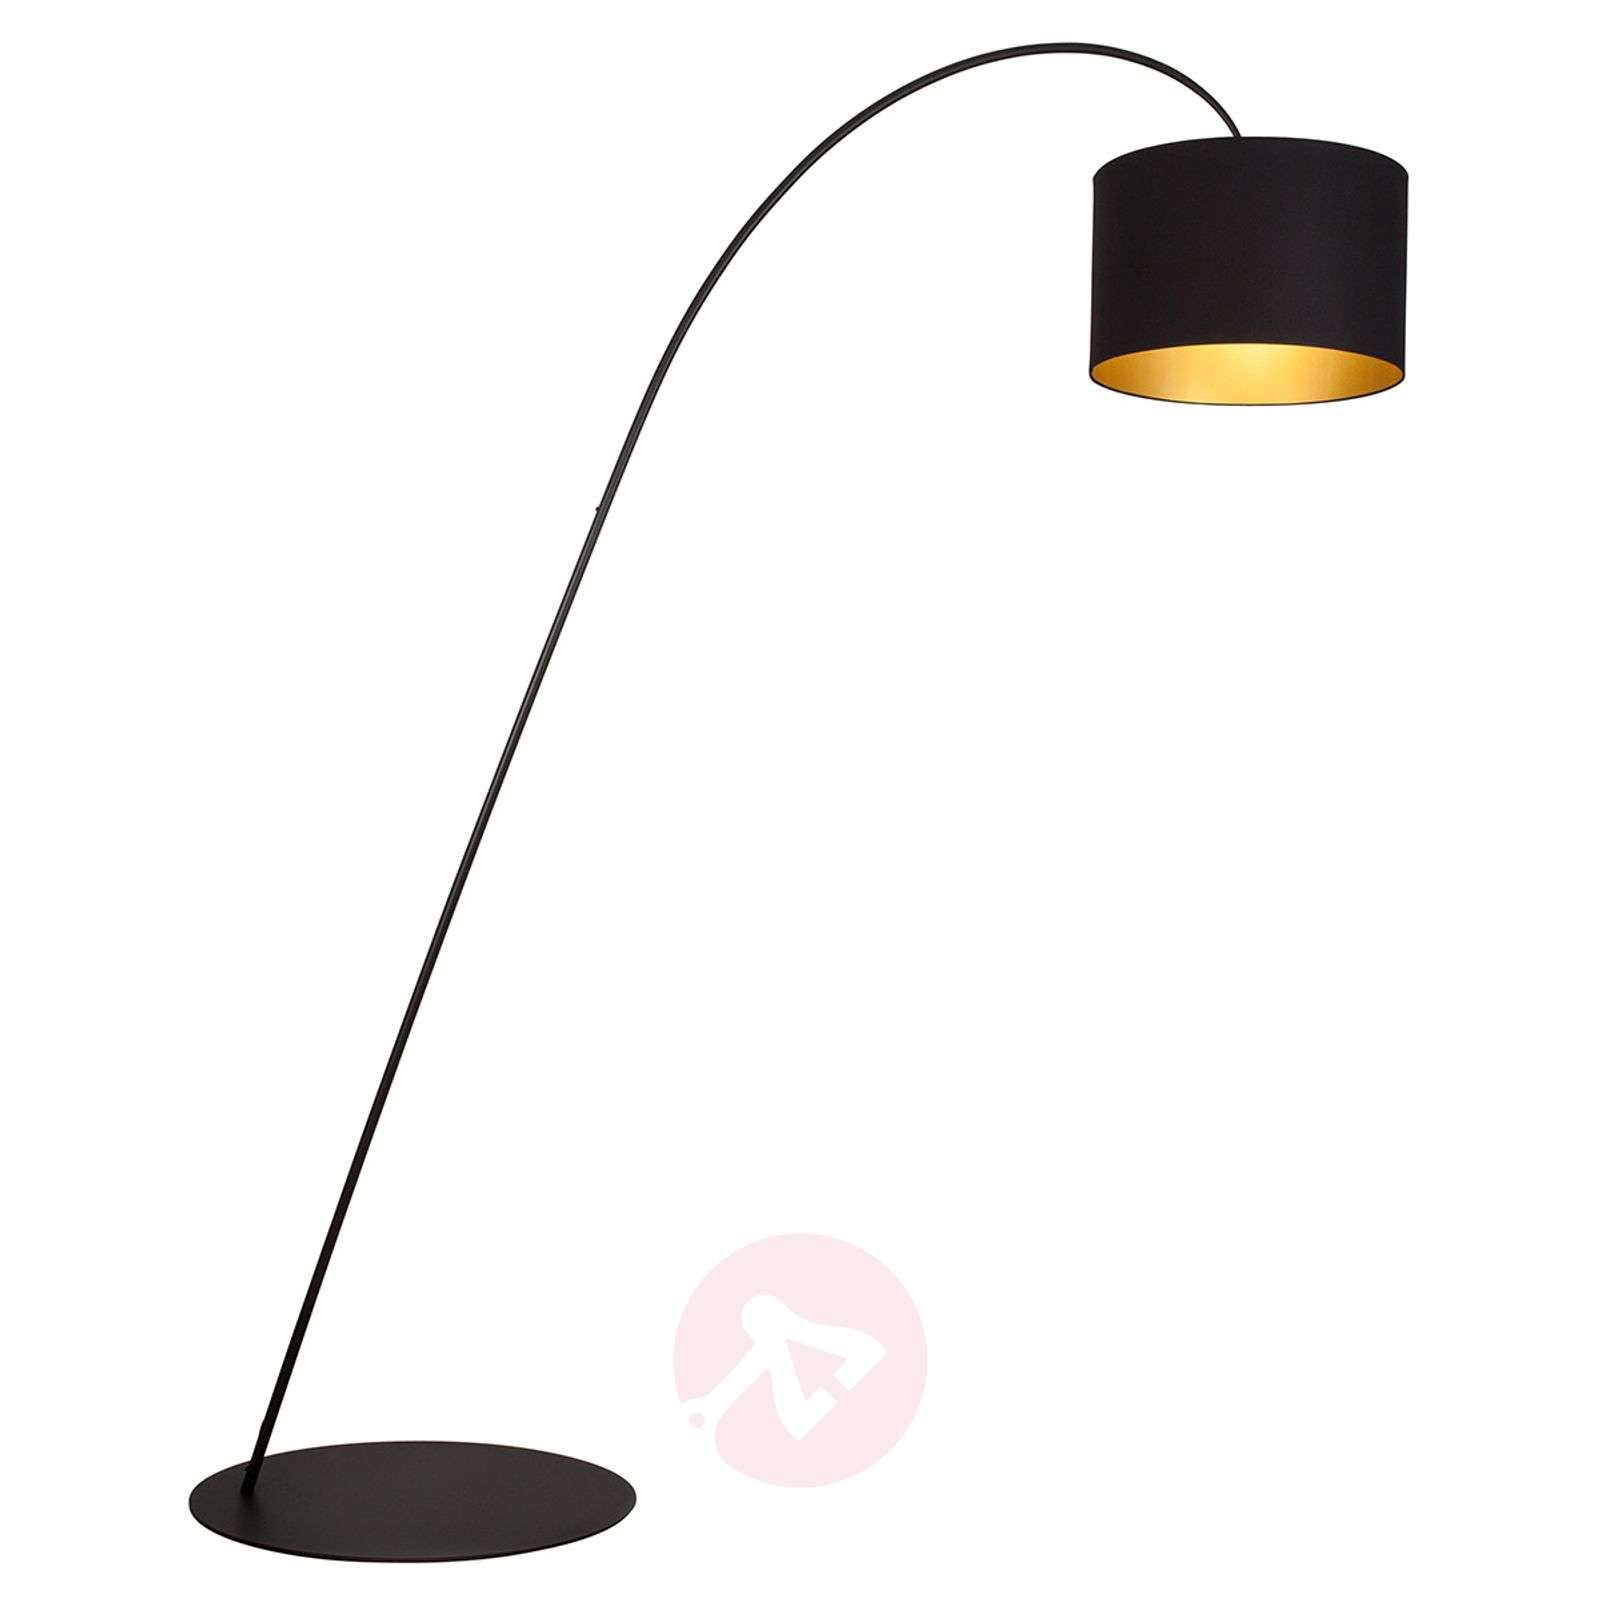 Awesome Large Arc Floor Lamp Giraffe In Black 1508952 01 ...